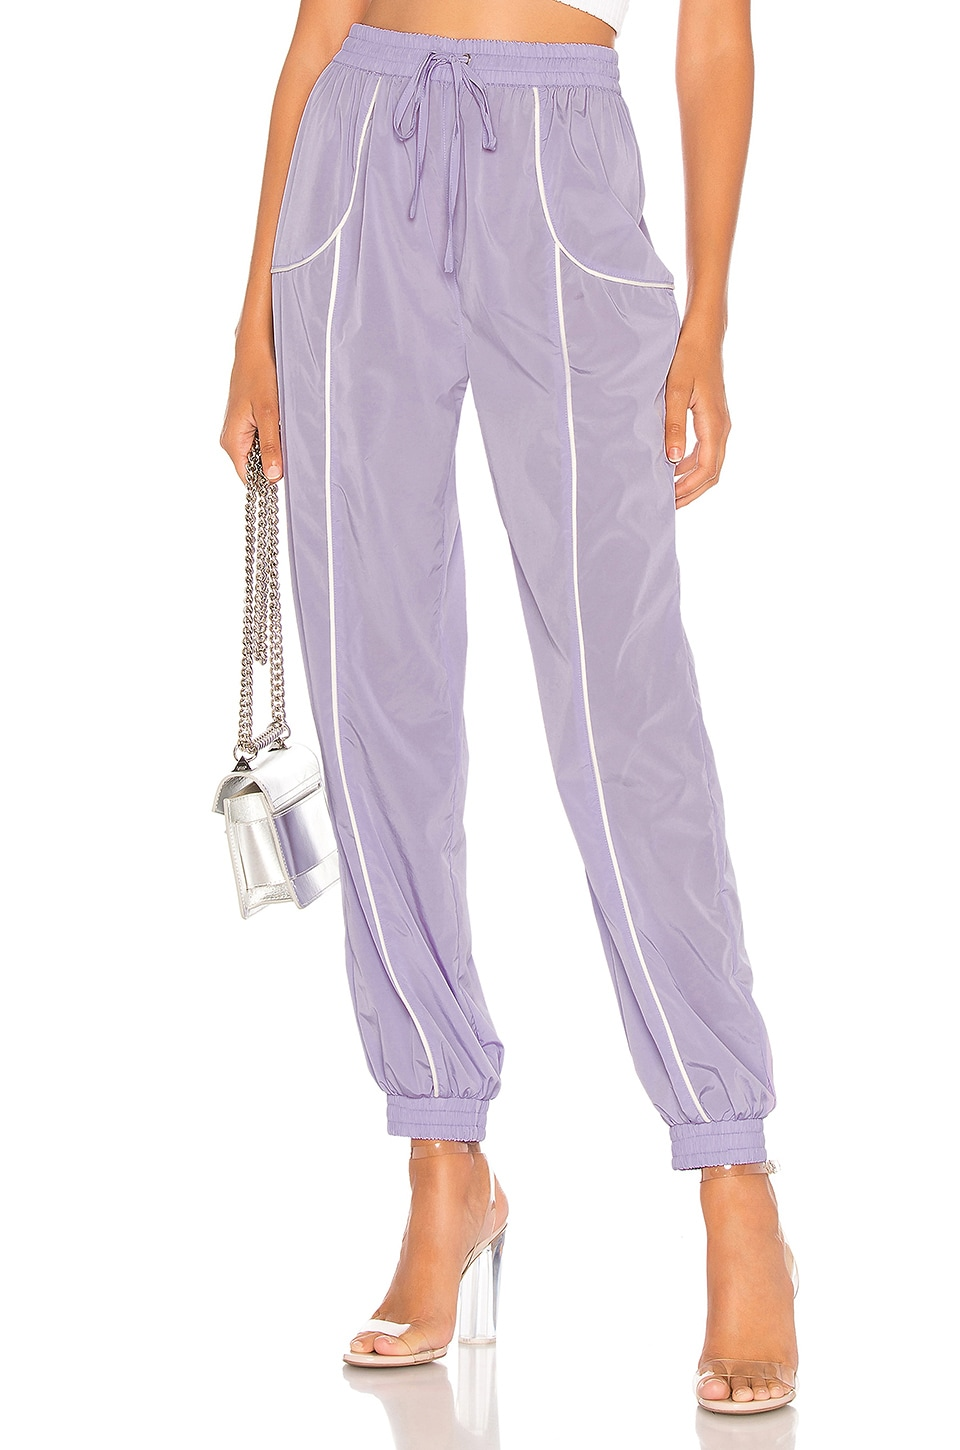 Lovers + Friends Liz Track Pant in Lilac